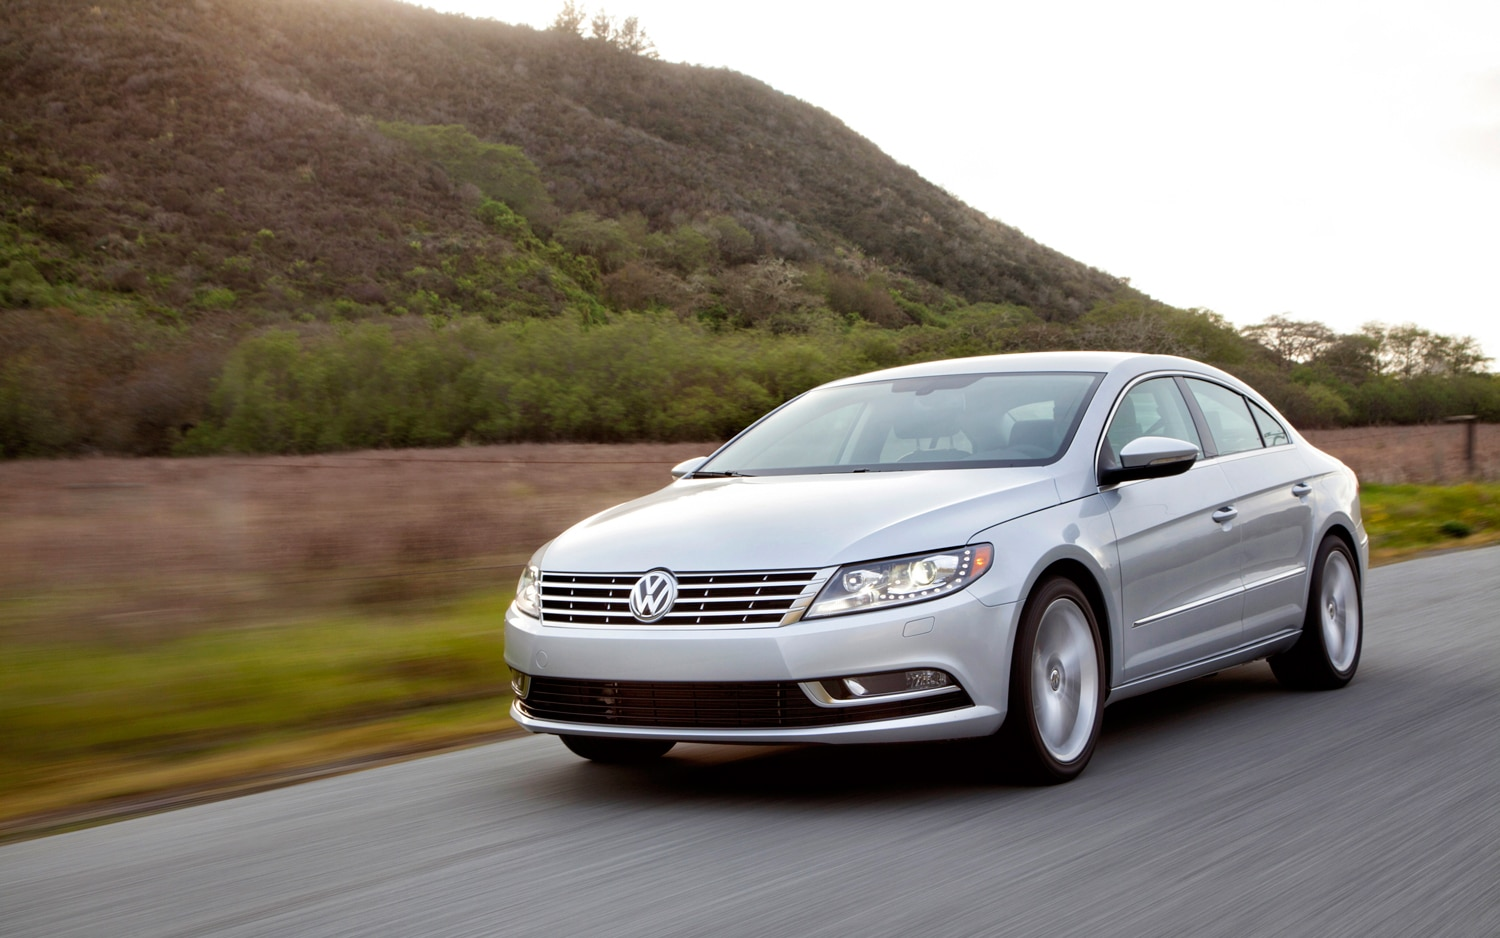 2013 Volkswagen CC Front Left View1